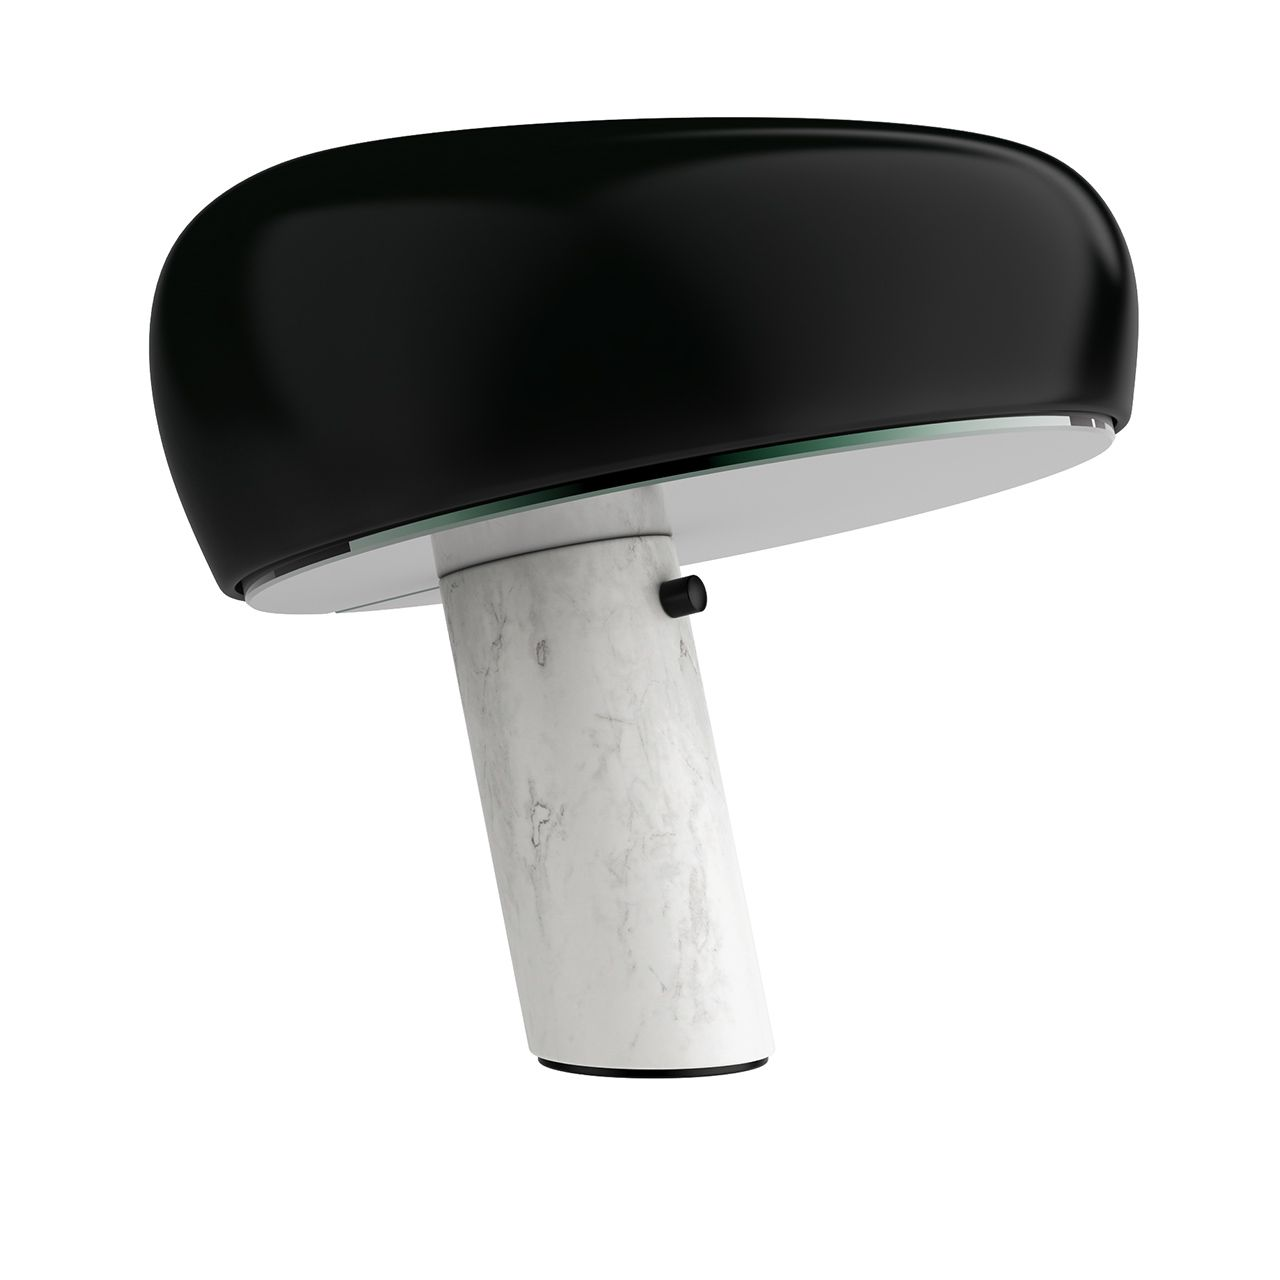 Snoopy Table Lamp By Flos Dimensiva Table Lamp Design Flos Table Lamp